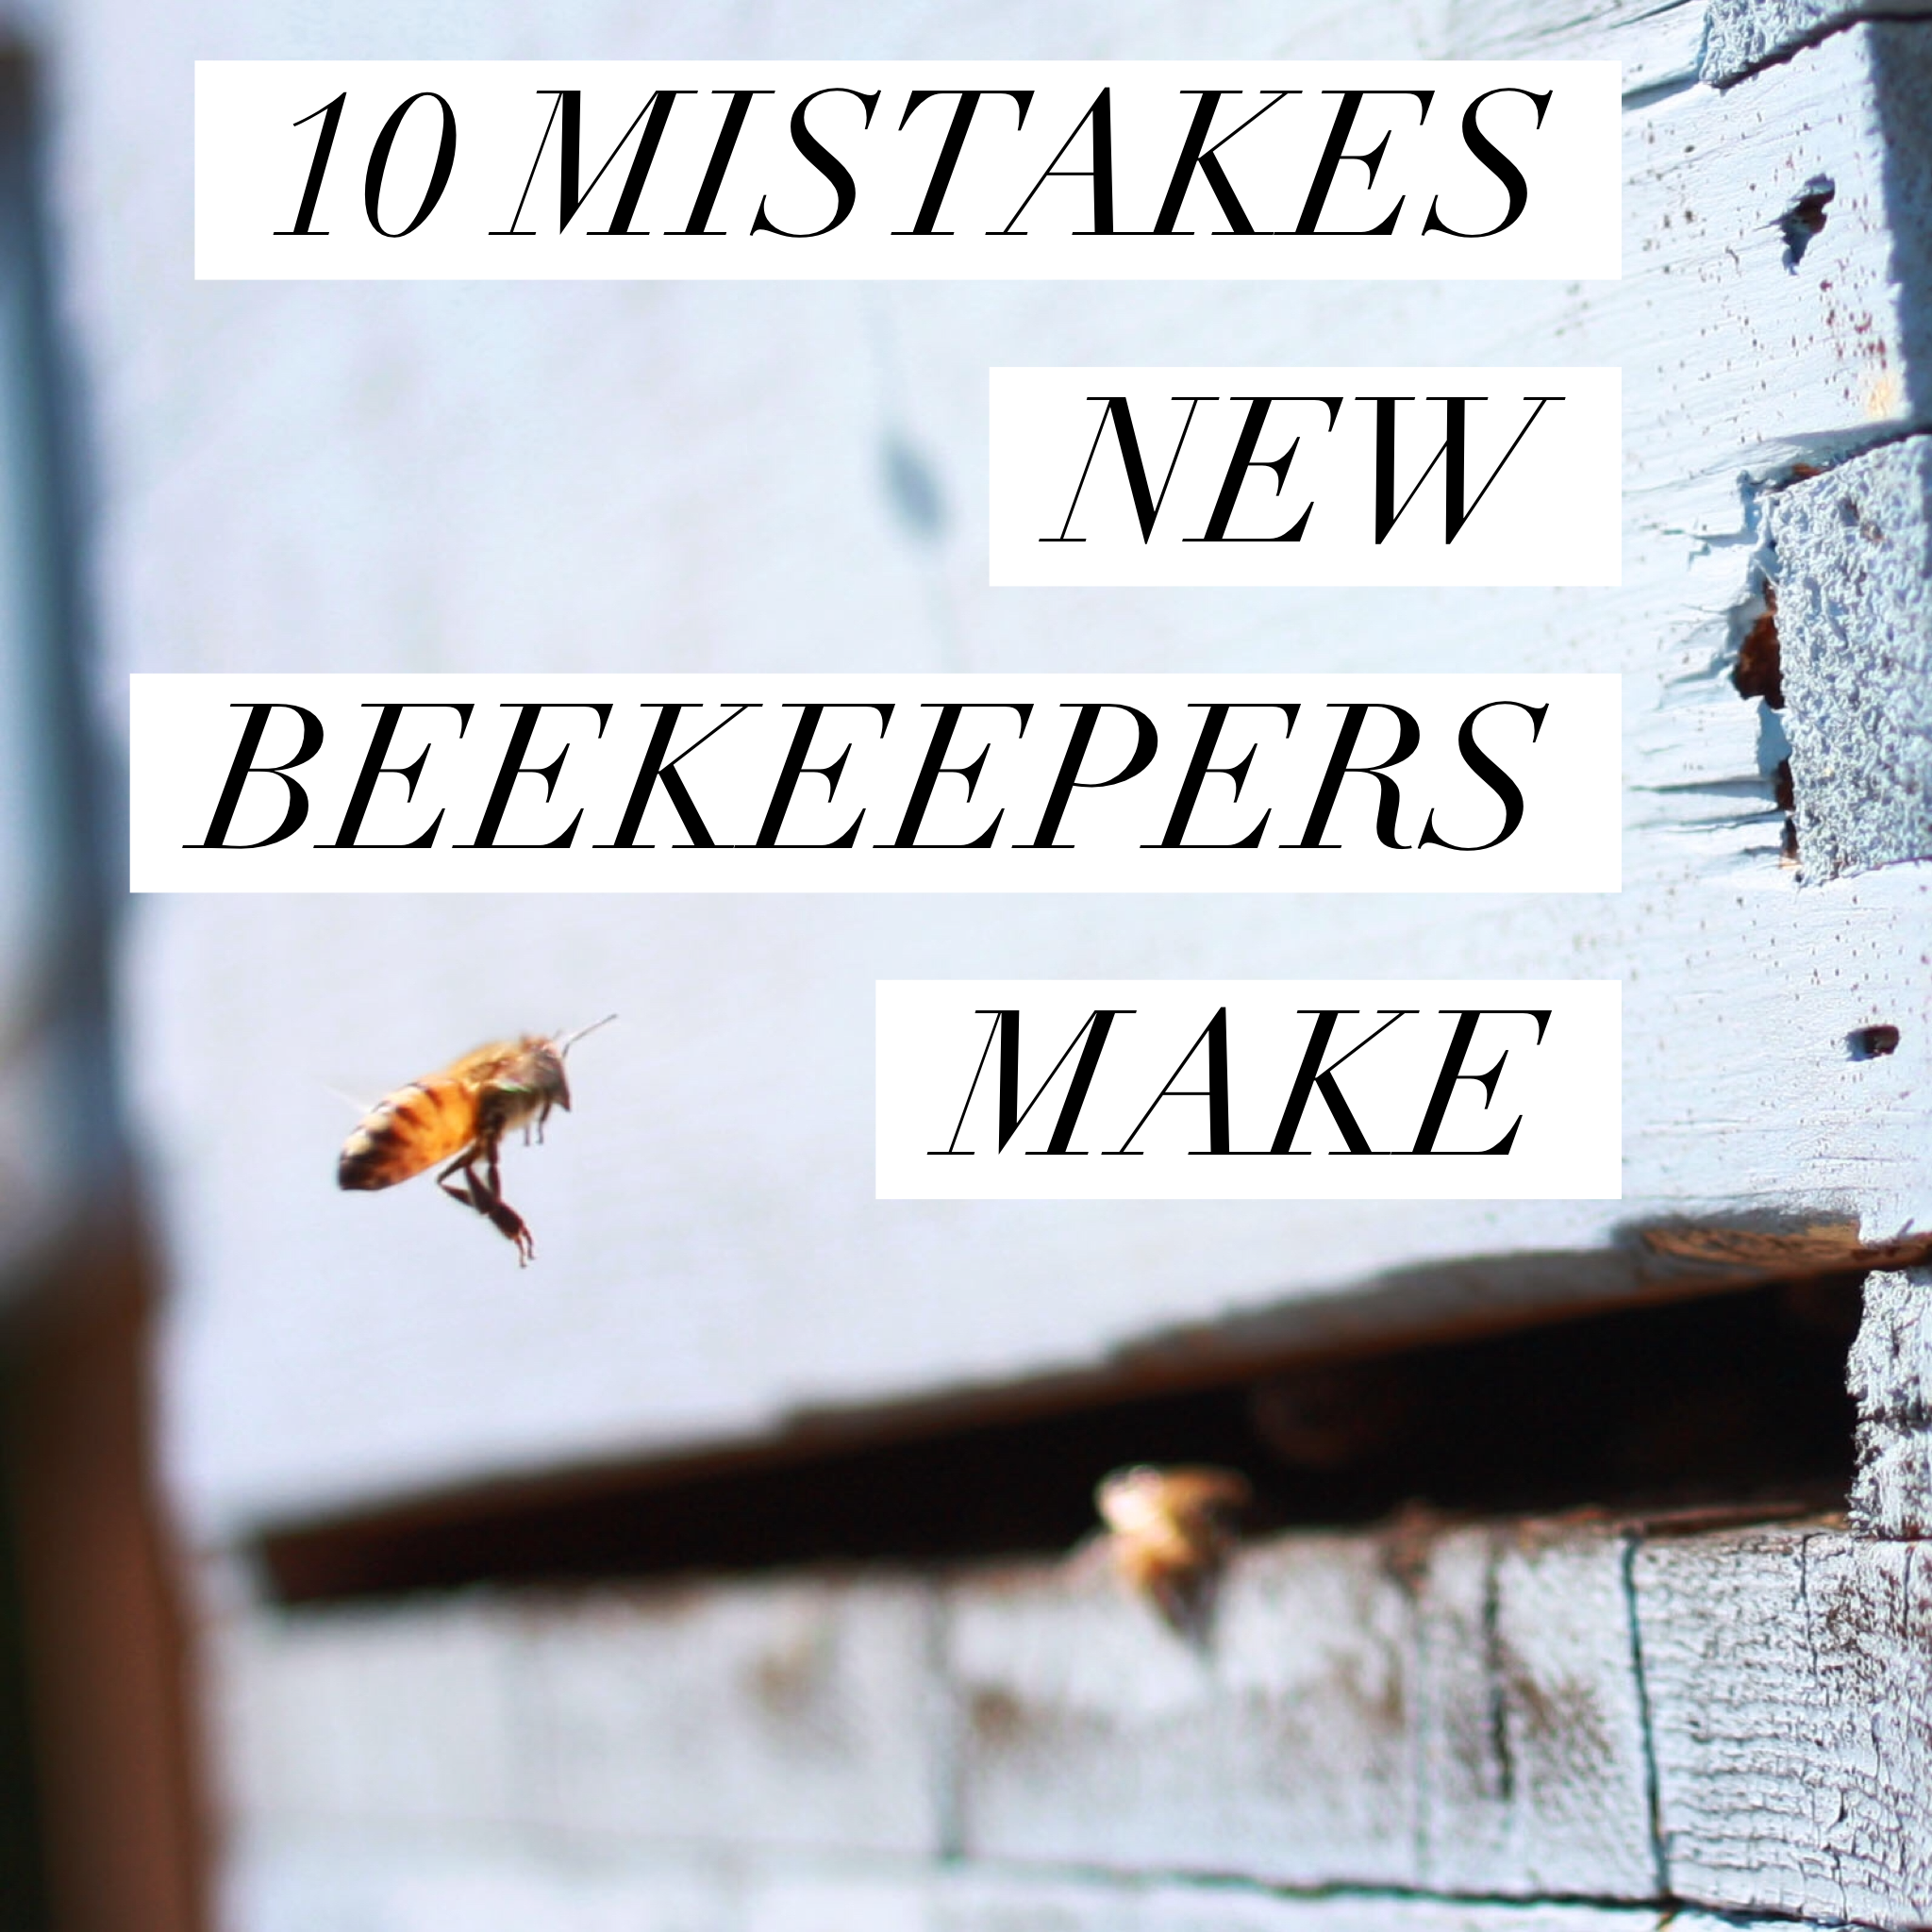 actionable info for natural health enthusiasts beekeeping